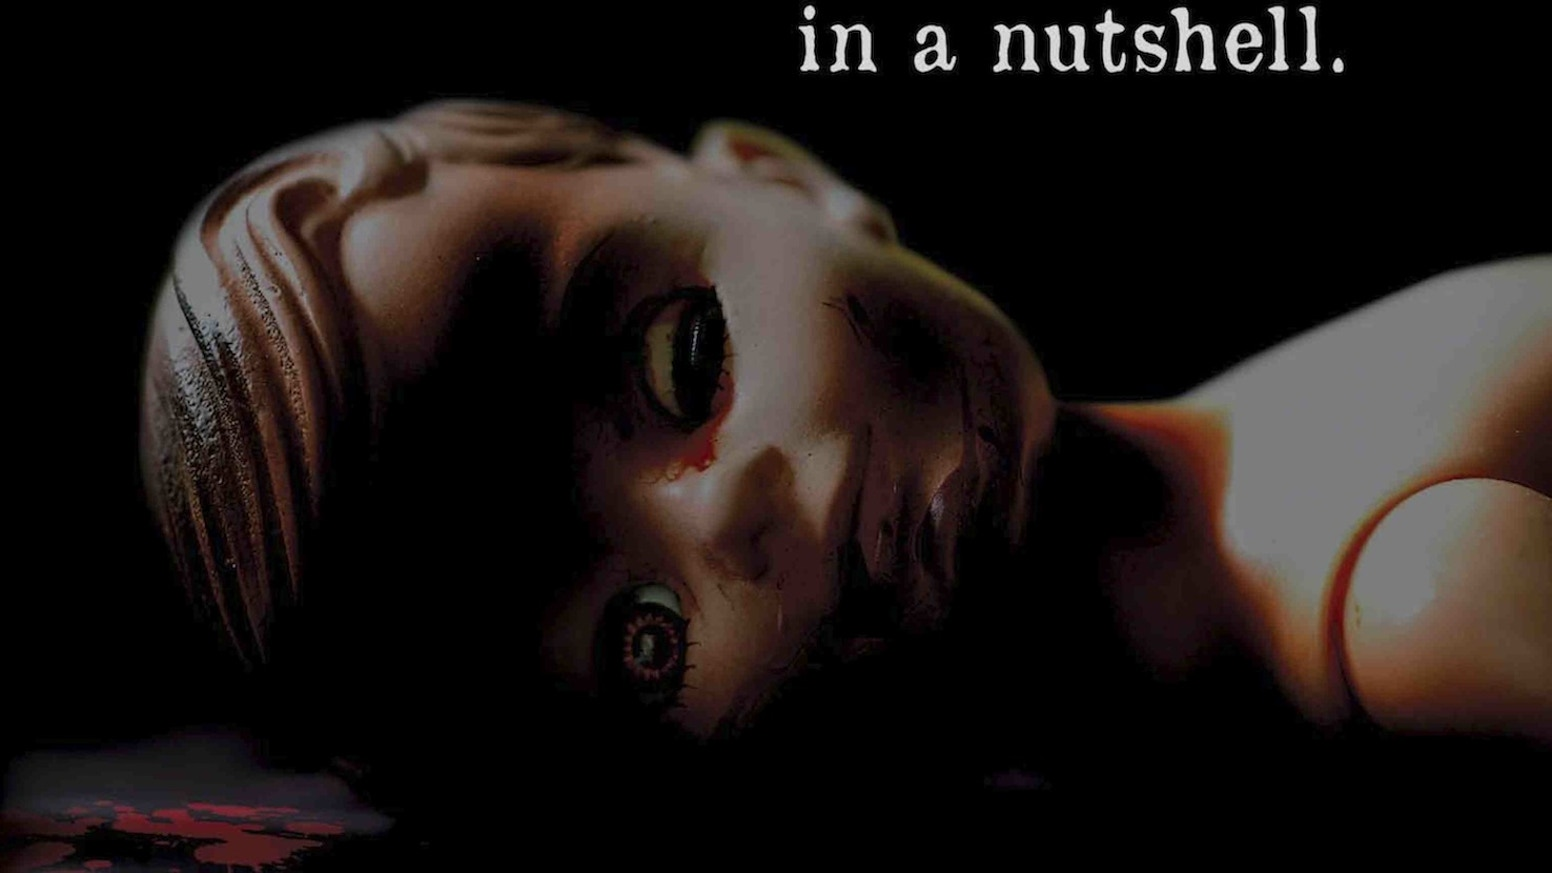 Murder Mystery And Dolls A New Documentary Film Sequel Featuring The Dead Doll Mysteries Of Artist Cynthia Von Buhler